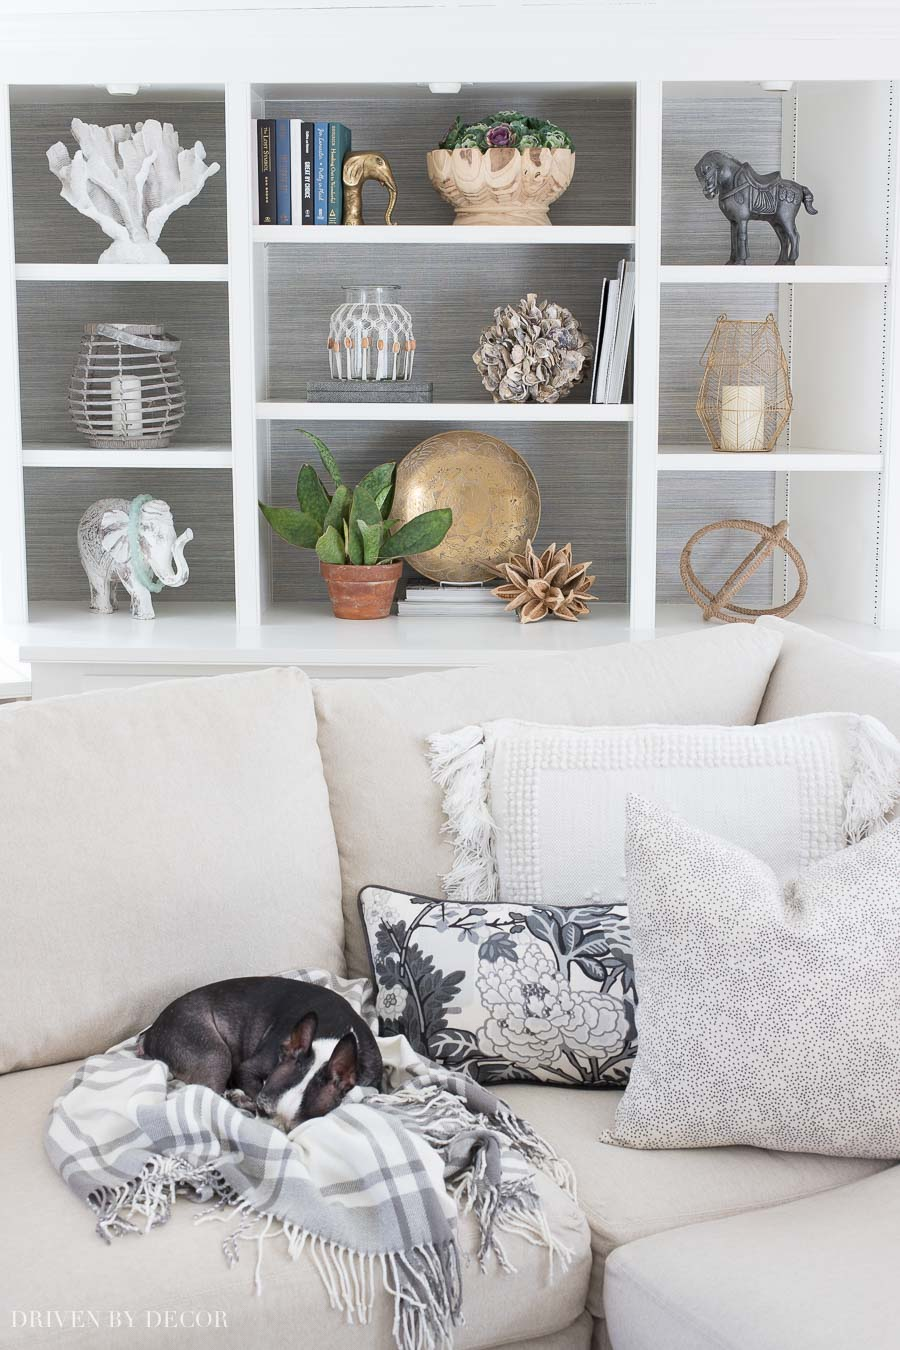 So many great ideas of how to decorate shelves and bookcases!